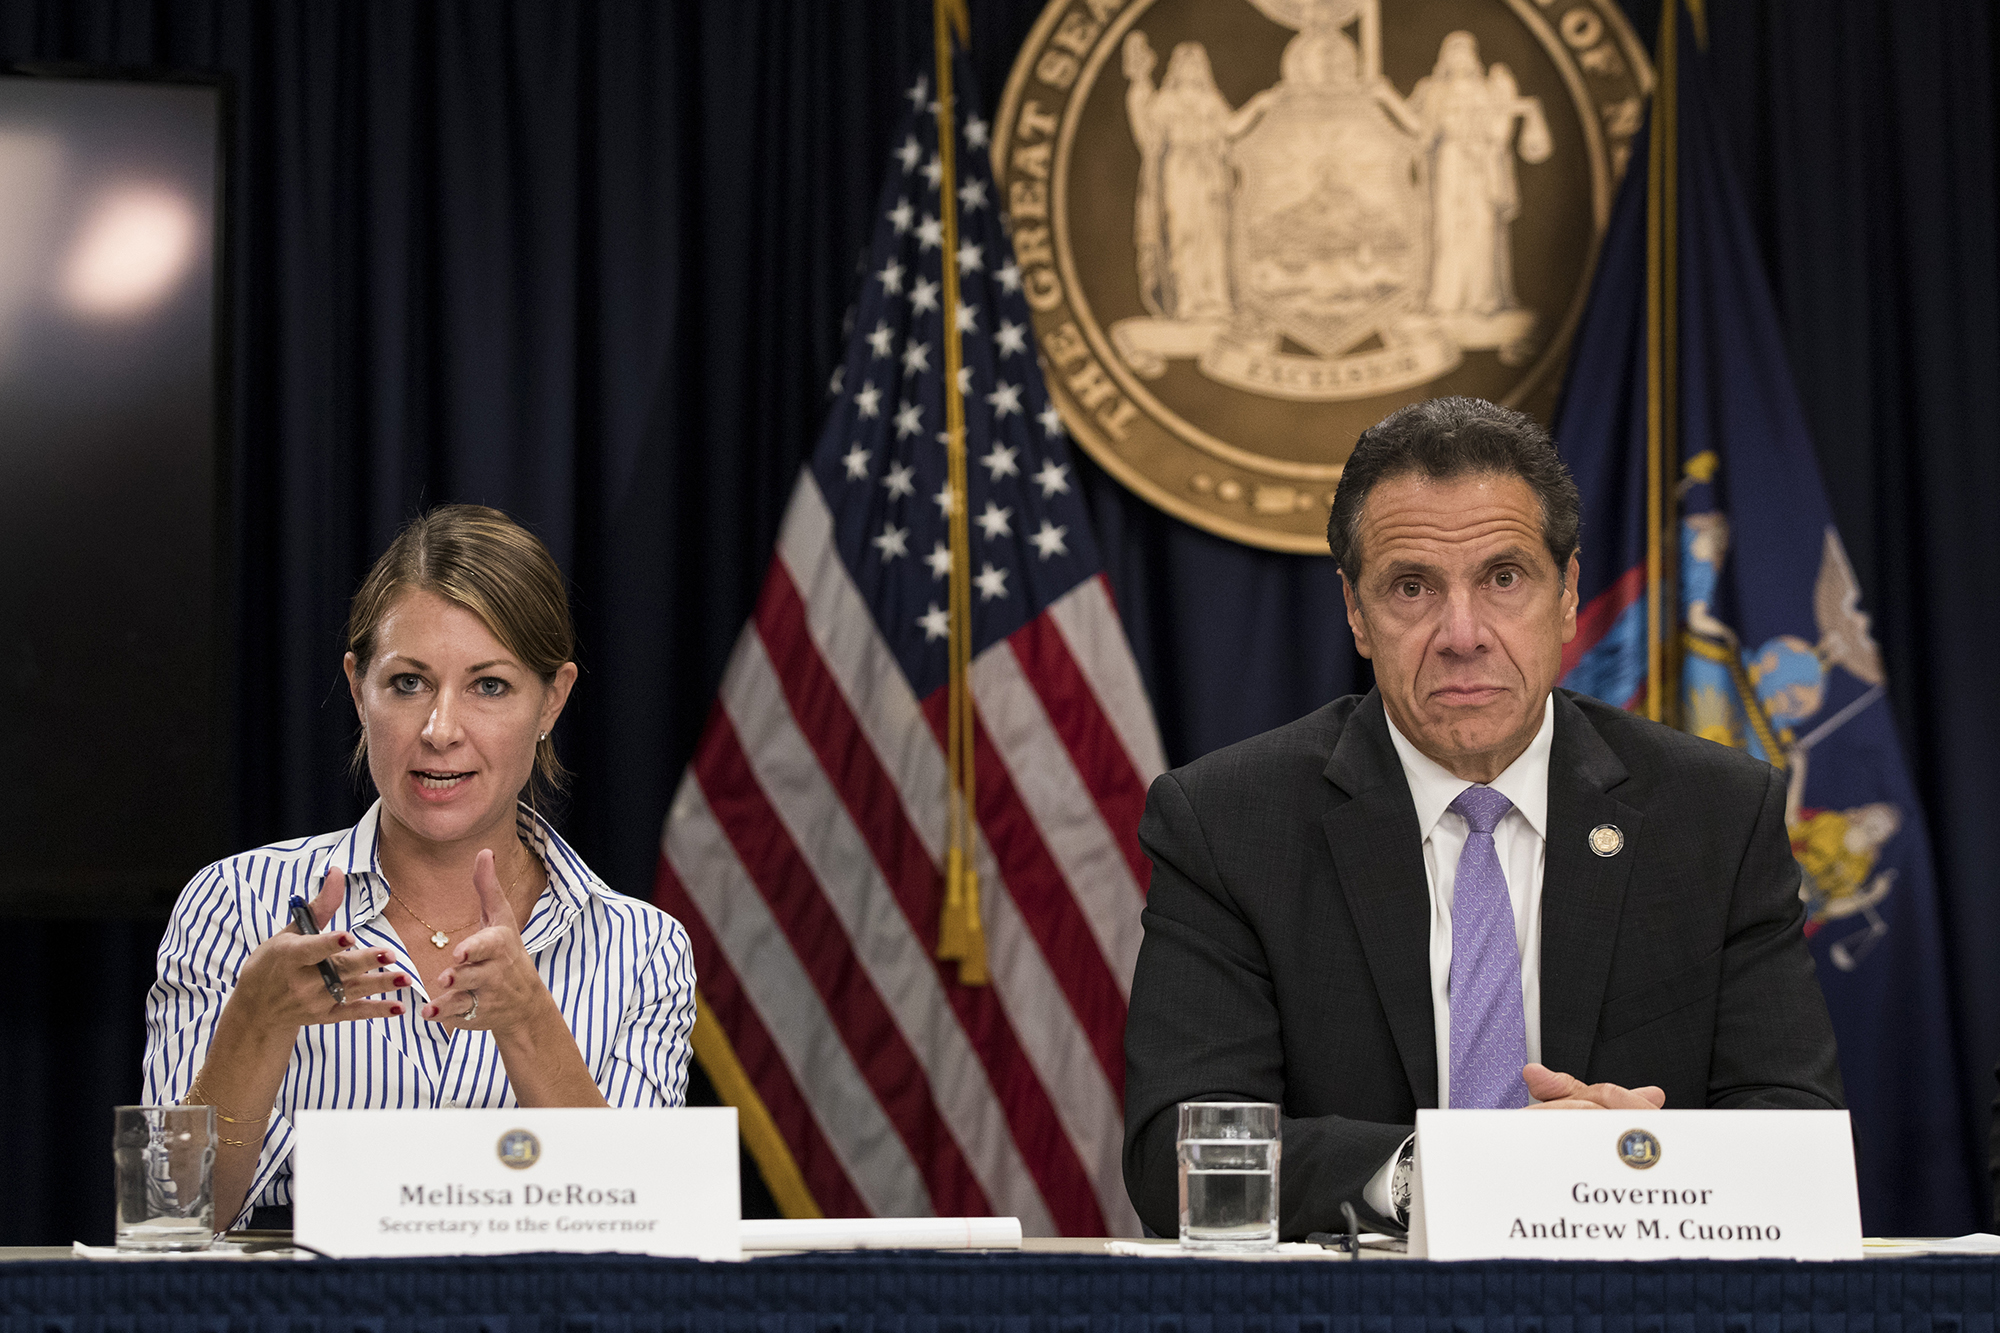 Cuomo S Top Aide Melissa Derosa Makes More Than Her Boss